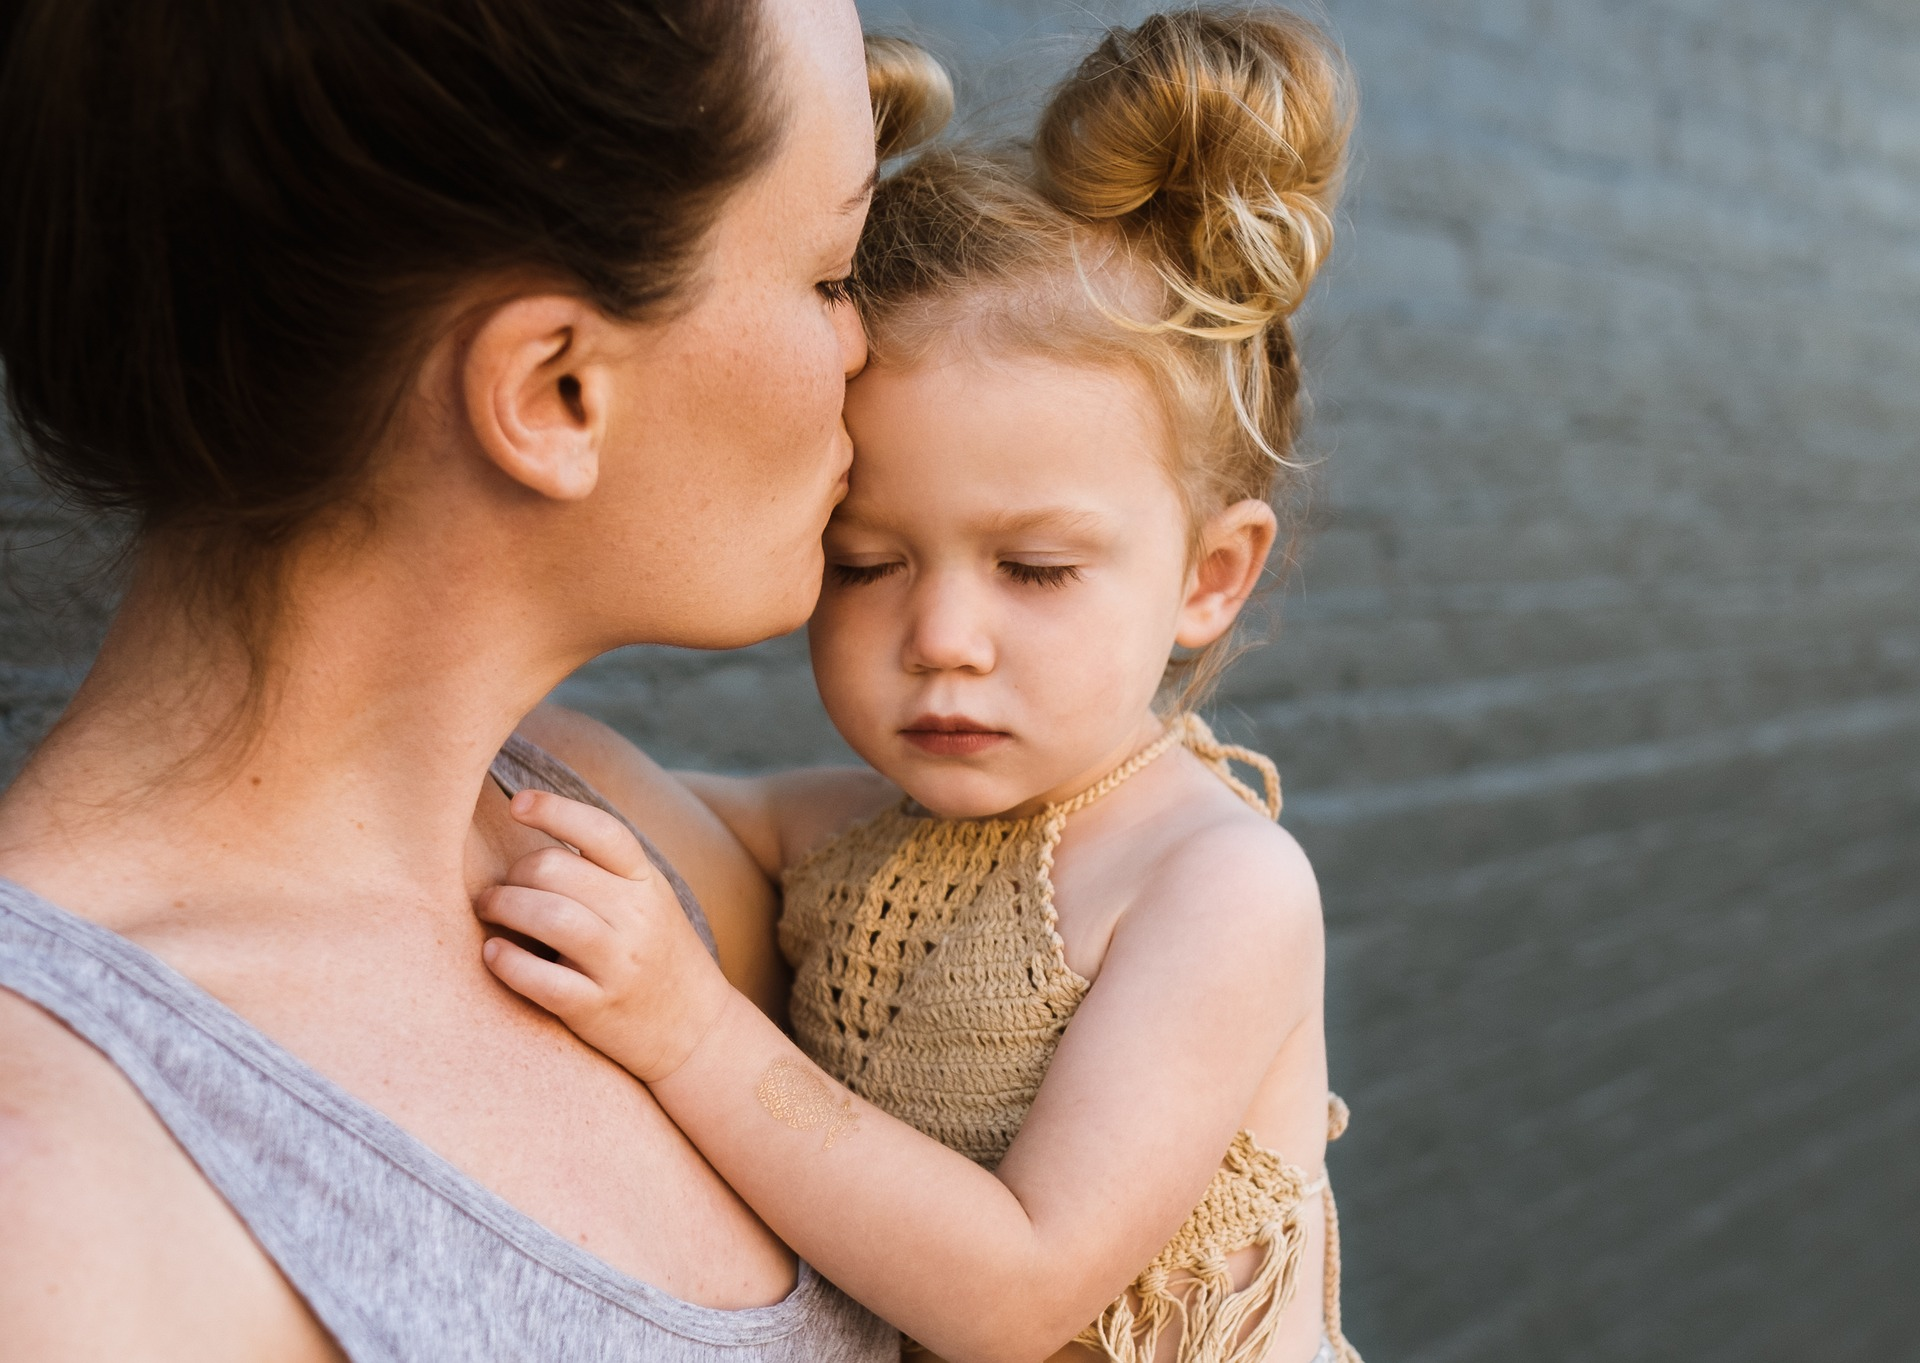 Dear Single Parents-You Are My Heroes: Six Side Effects of Single Parenting